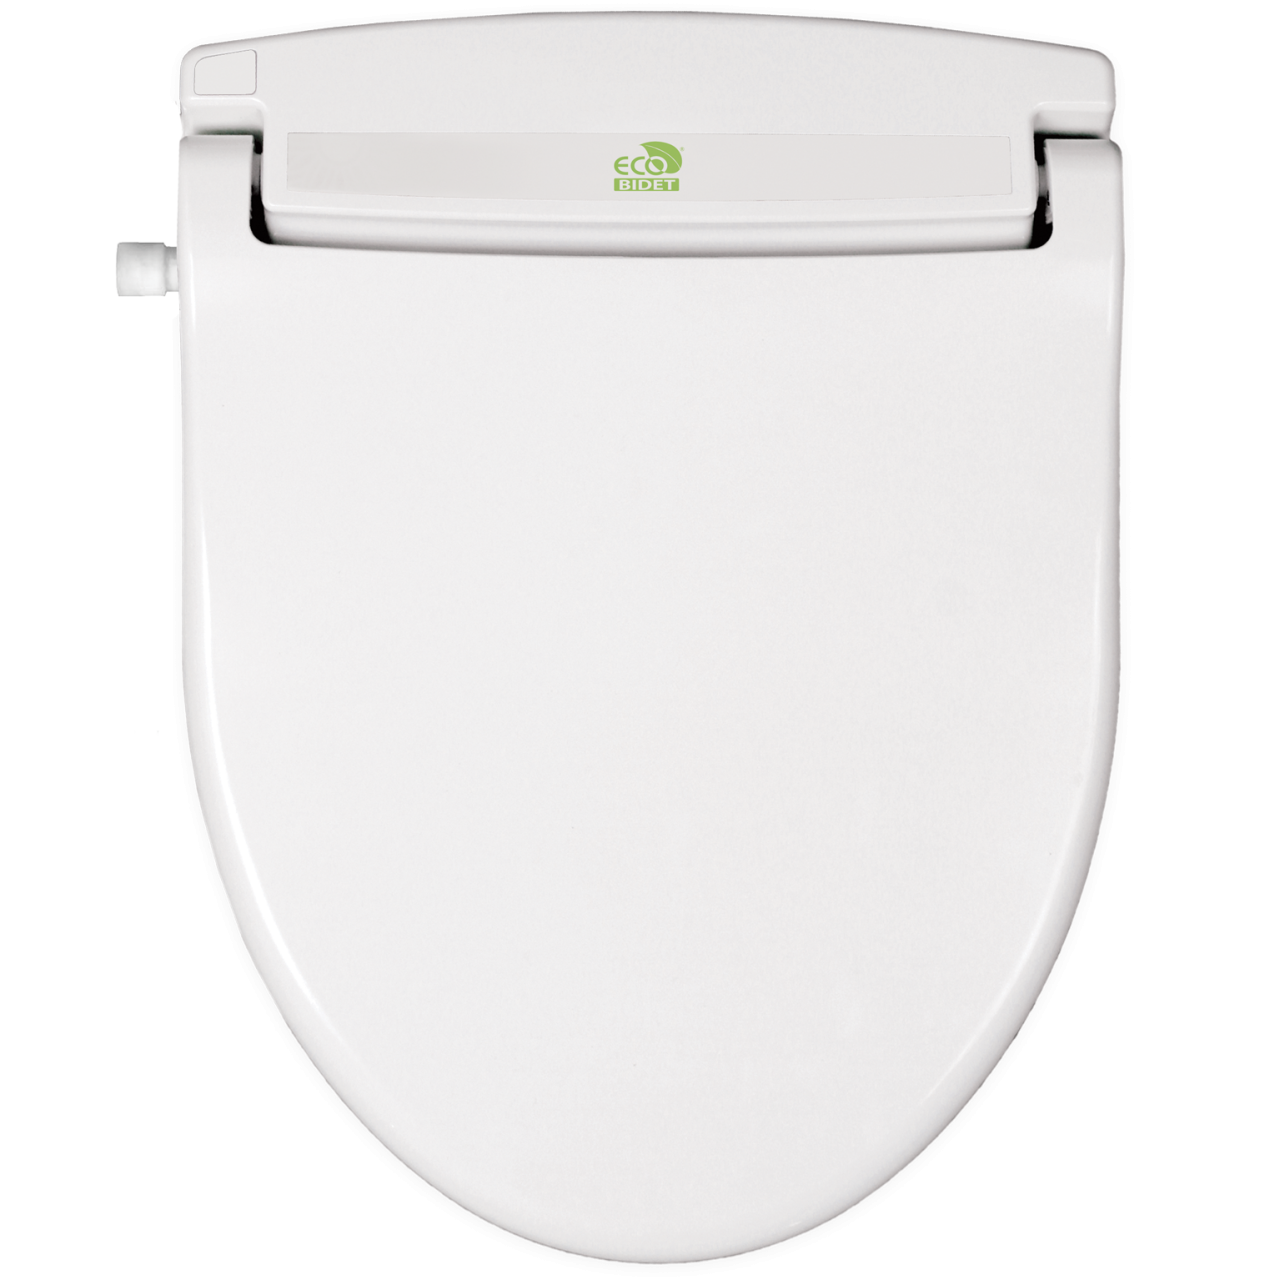 Enjoyable Eco Bidet R500 The Bidet Shop Pdpeps Interior Chair Design Pdpepsorg